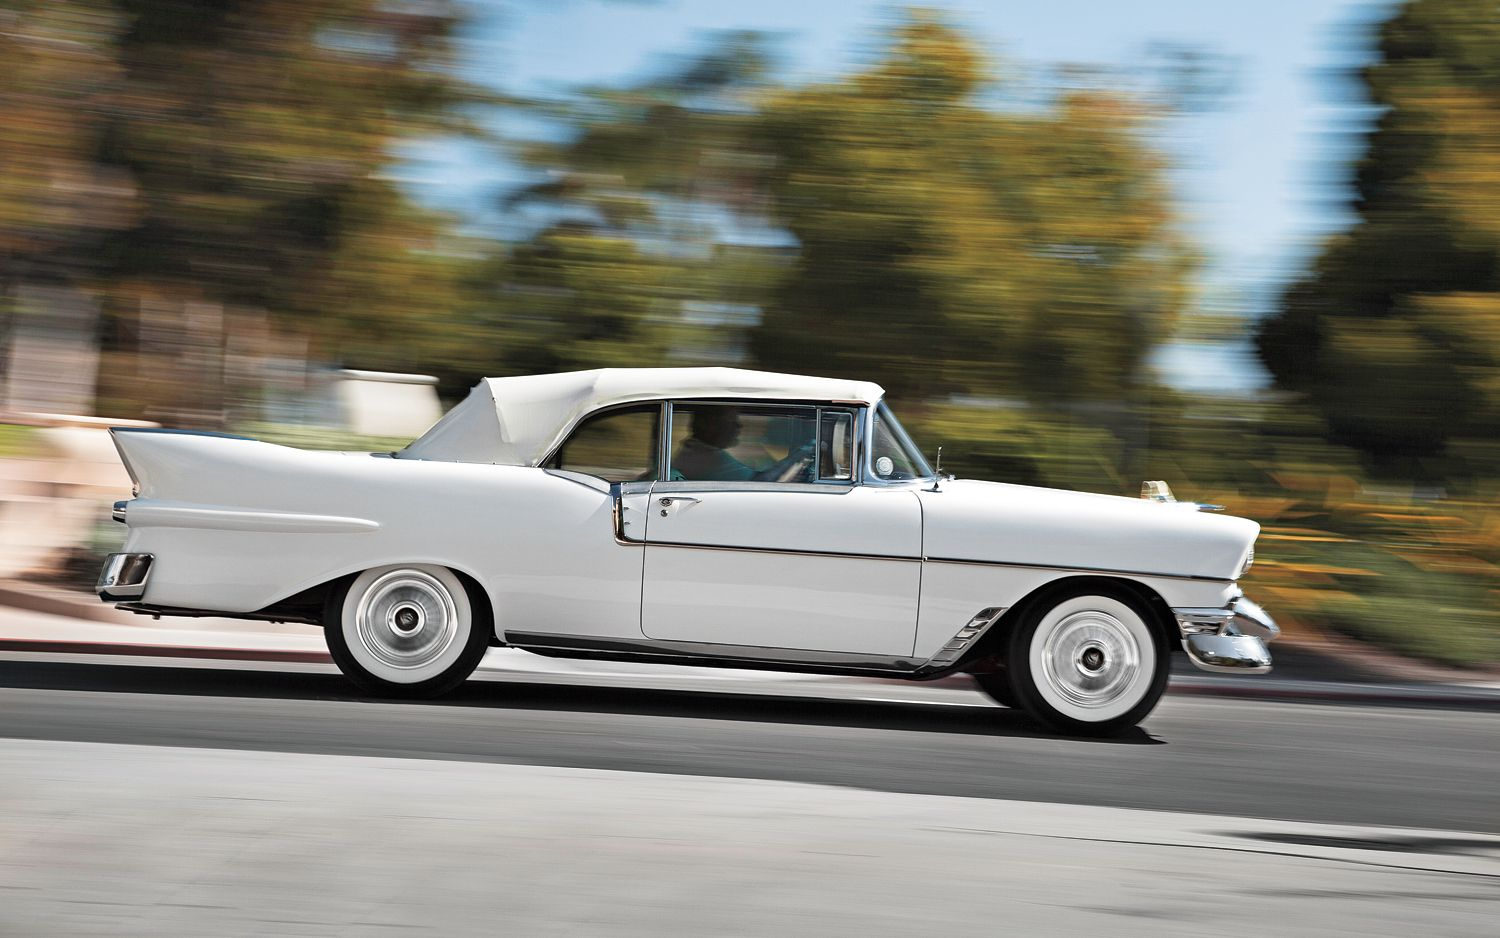 All Chevy 1956 chevy nomad for sale : 1956 Chevy El Morocco | Cars | Pinterest | Chevrolet, 1957 ...